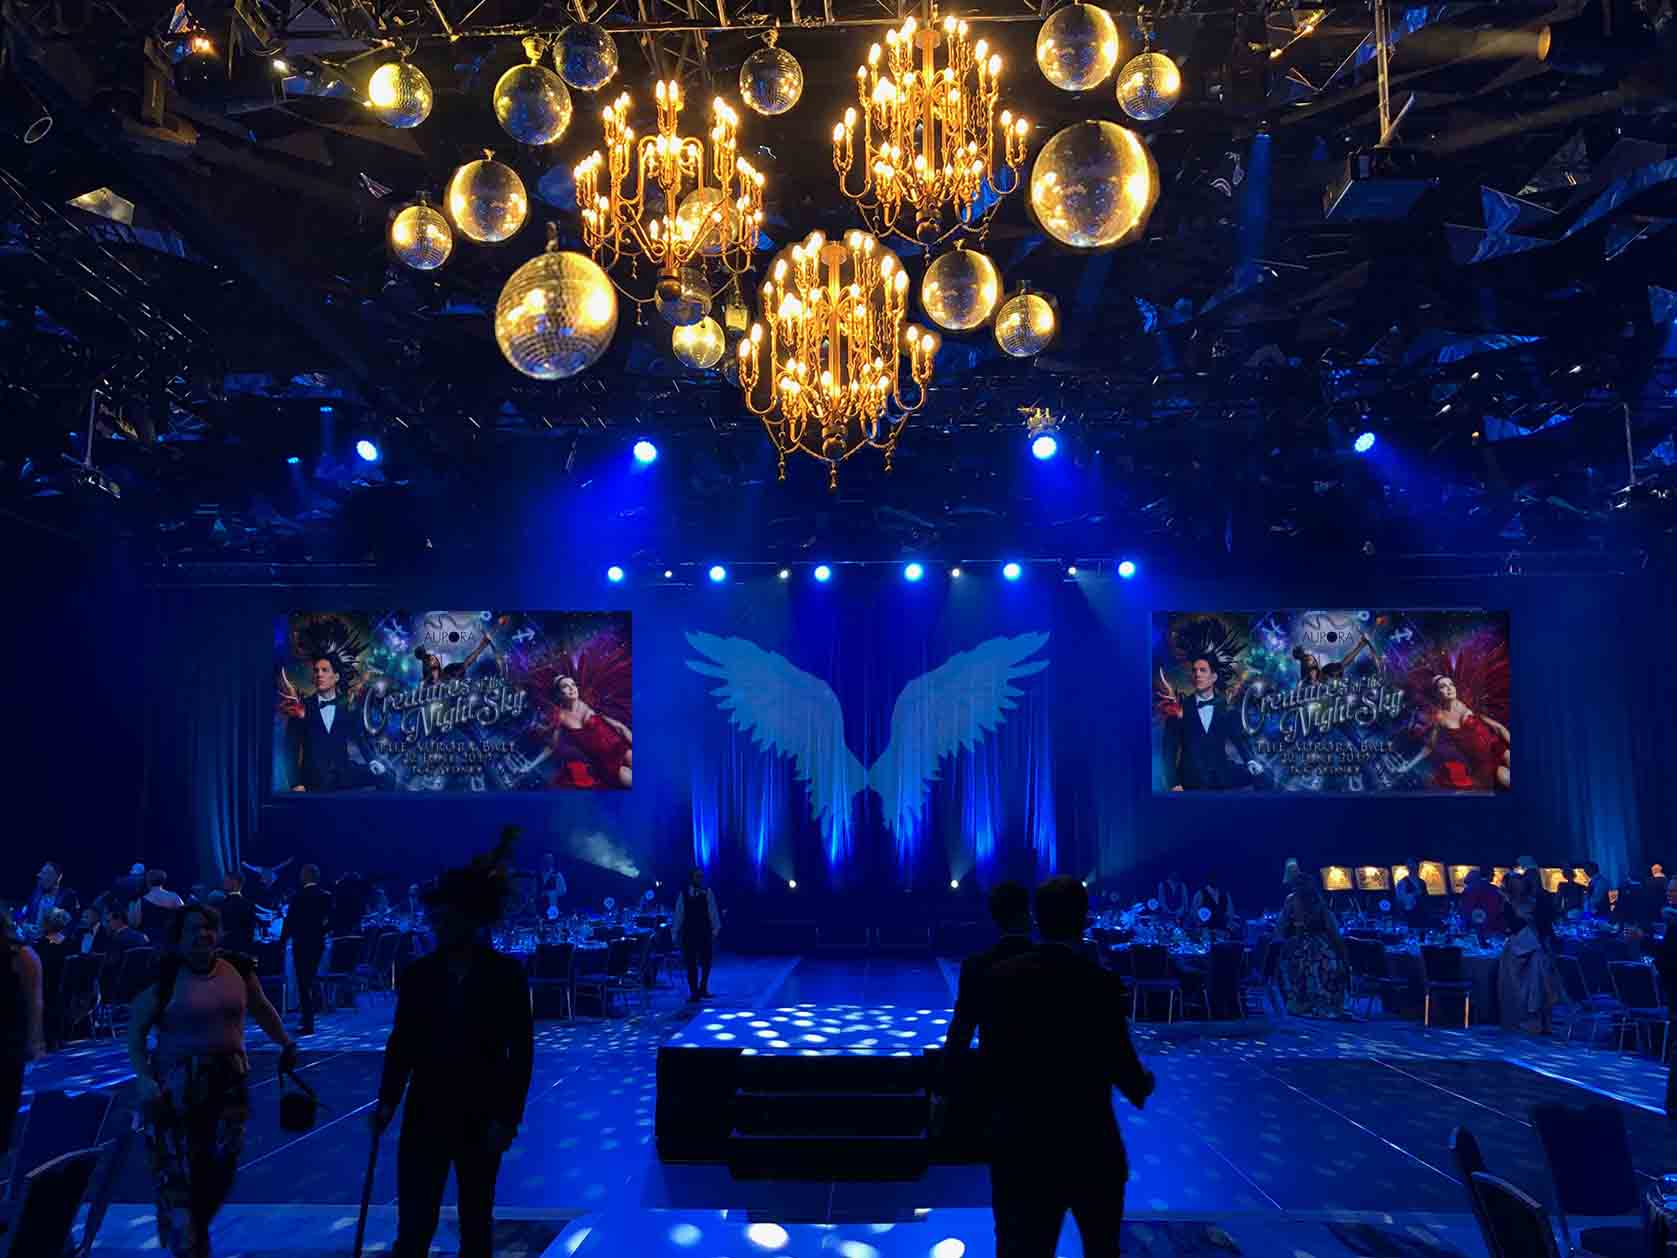 The design for the ball started as a blacked draped space with ascents of blue drapes highlighted with silver detail. This went through various design ideas landing on silver angel wings against tied blue drapes with blue drapes backing the main stage area. Central installation of gold chandeliers with various sized mirror balls to represent planets in the solar system over the dance floor.